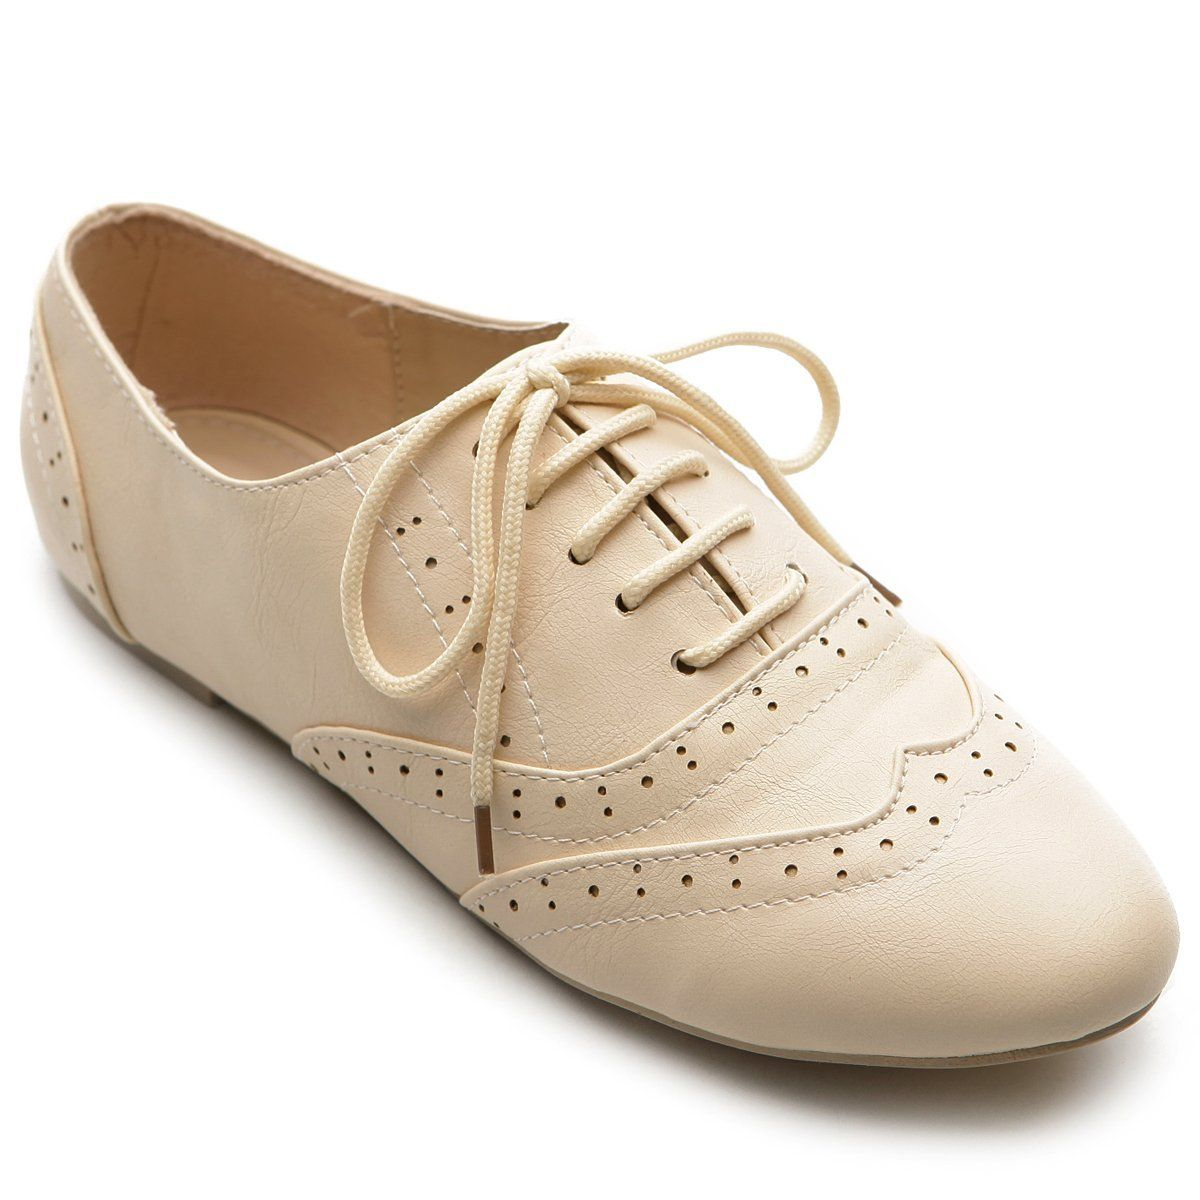 Amazon.com Ollio Womenu0026#39;s Shoe Classic Lace Up Dress Low Flat Heel Oxford Shoes | Clothes And ...